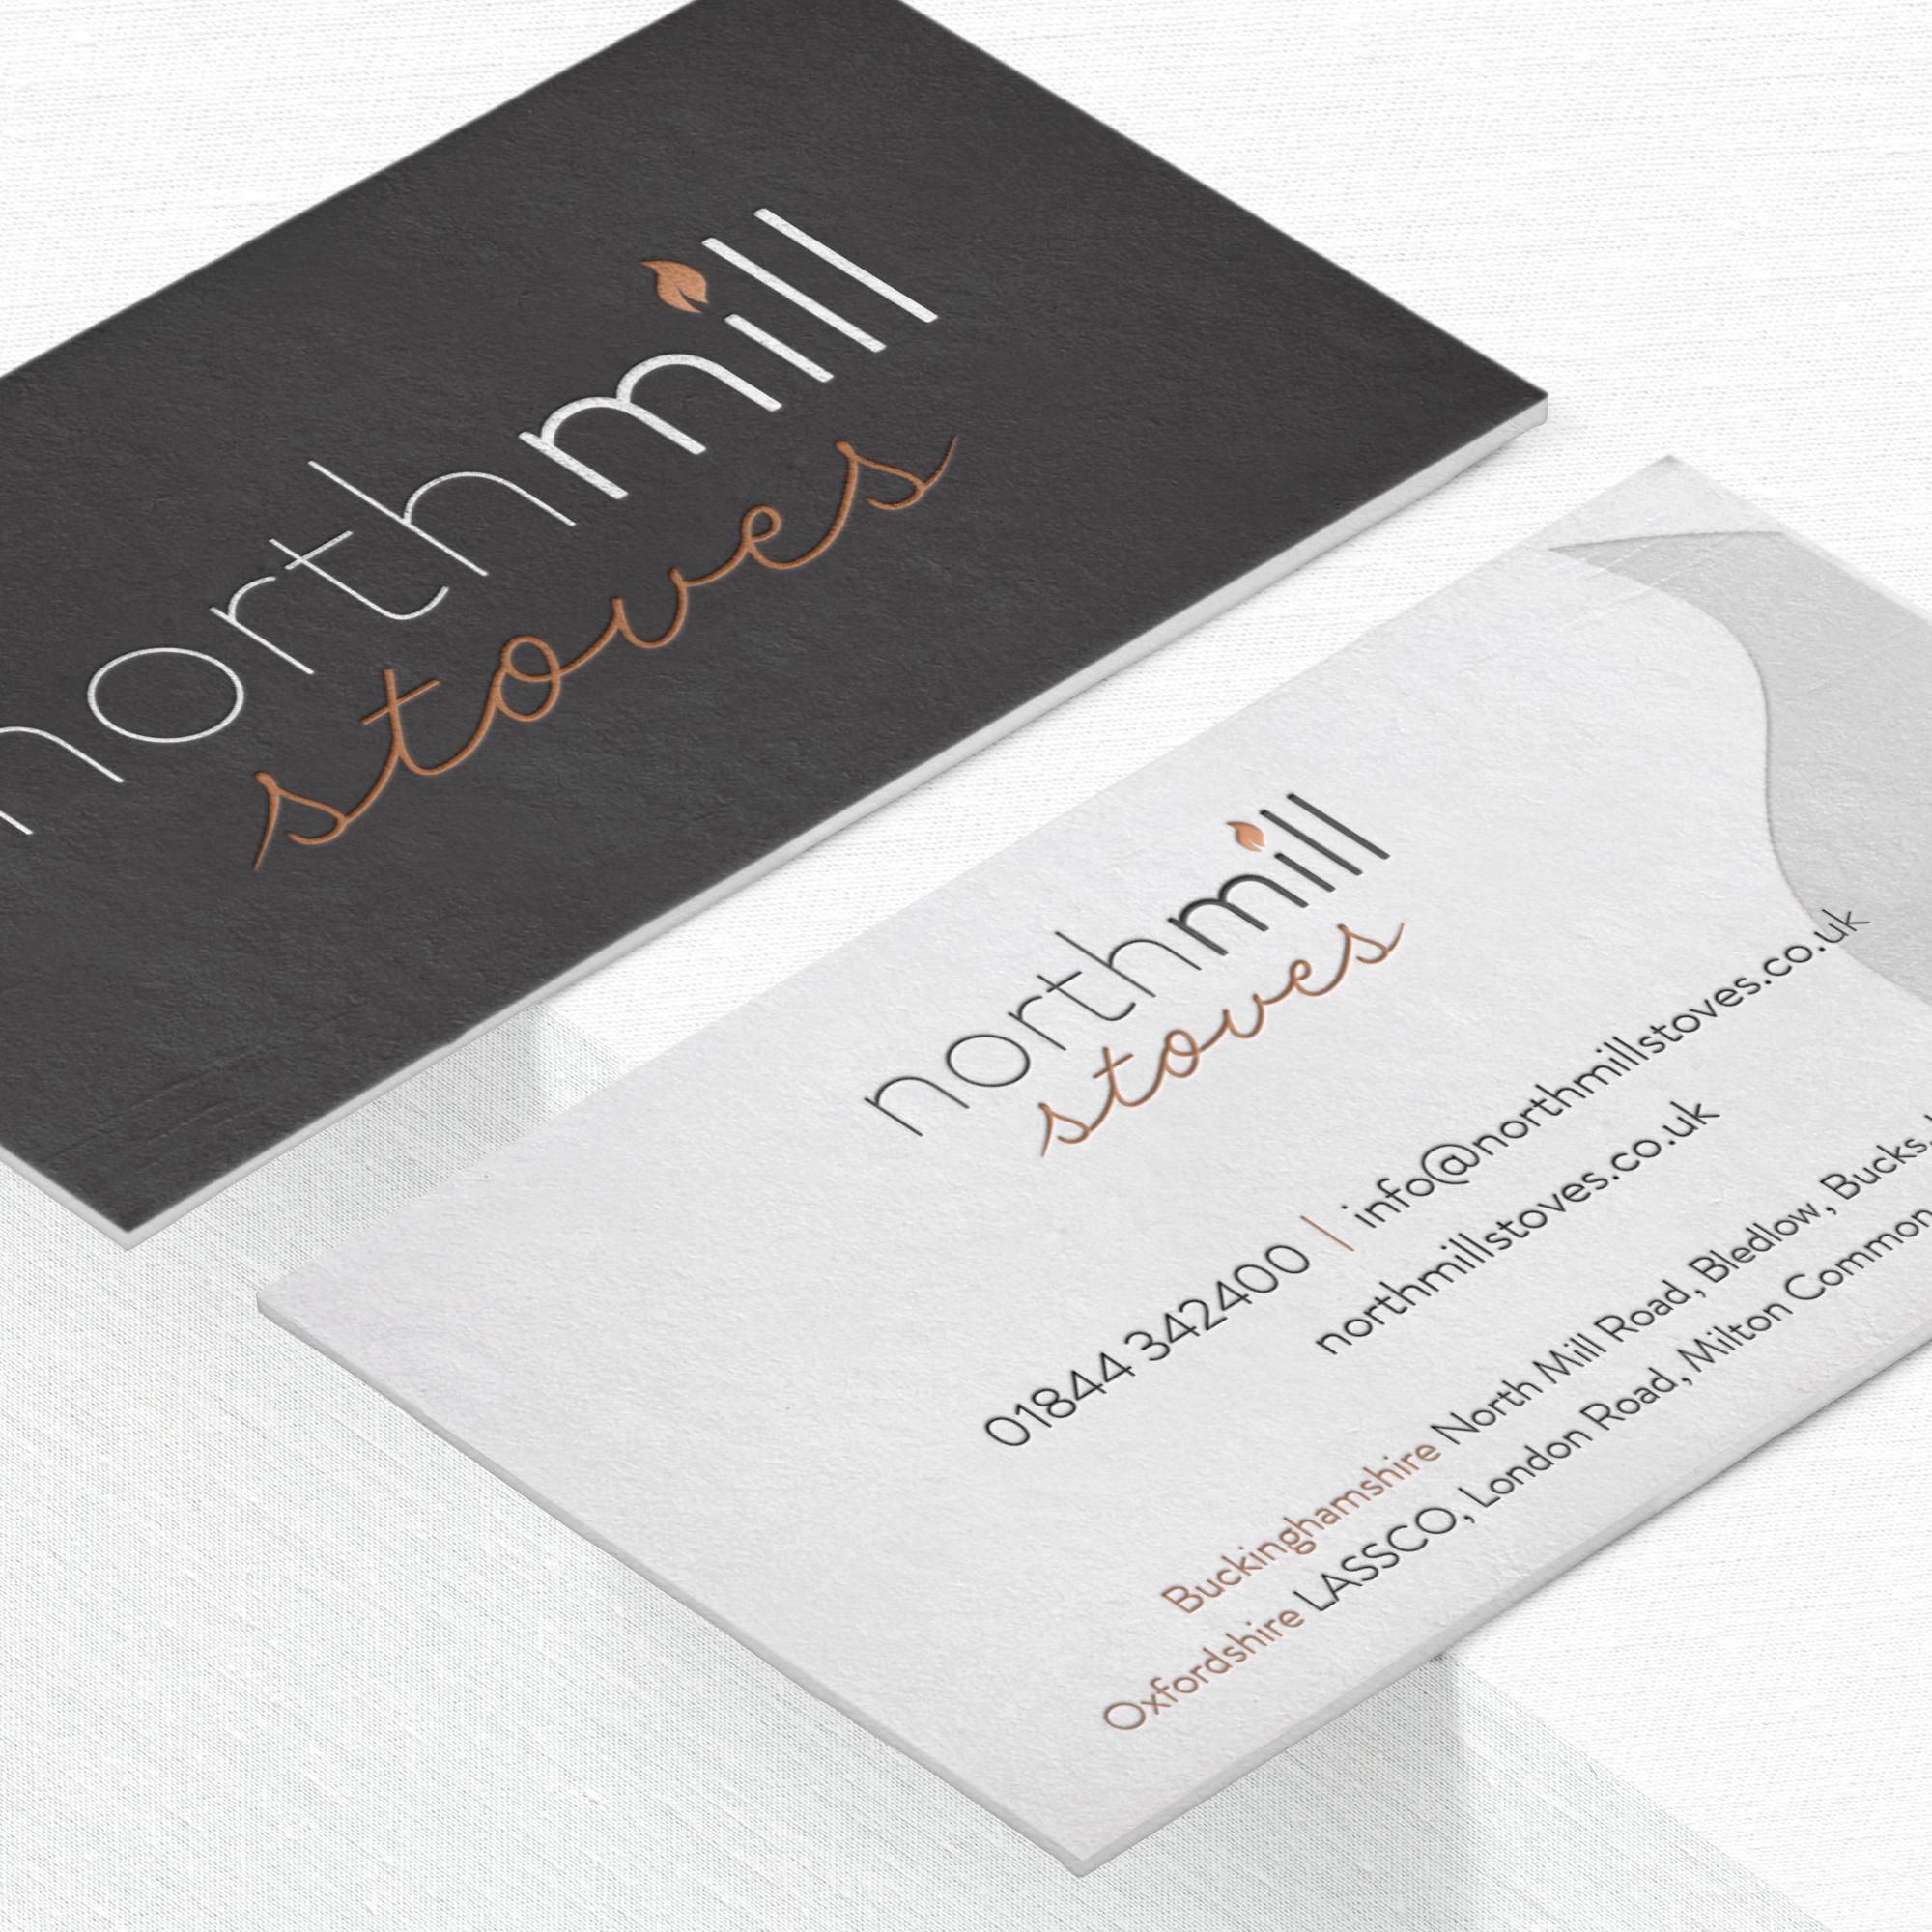 northmill-stoves-business-card.jpg